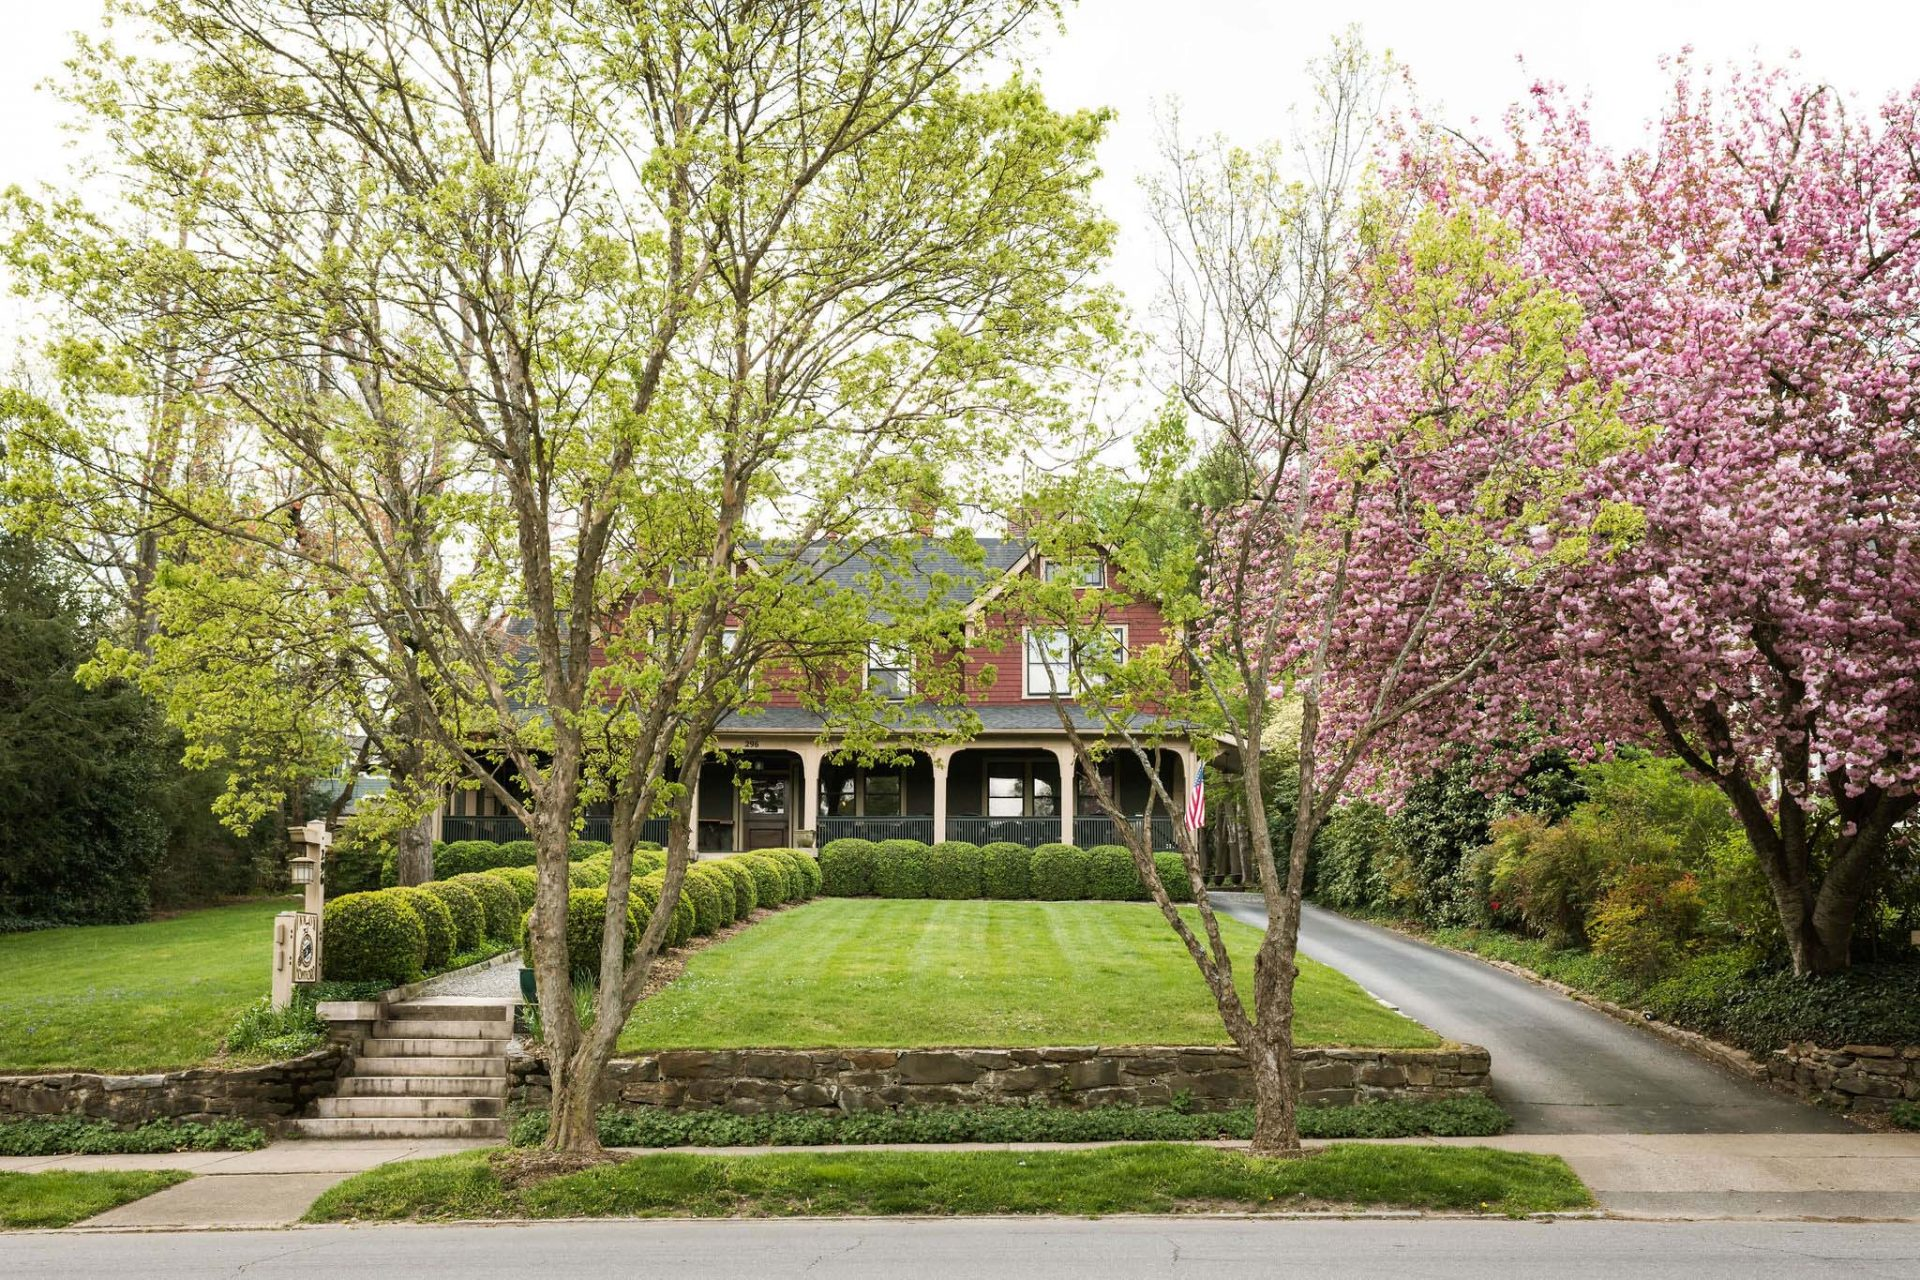 The front side of the Bed and Breakfast in Asheville with two tall trees growing on the sidewalk, cherry blossom trees to the right. Front yard with trimmed lawn and rows of green round ball bushes.